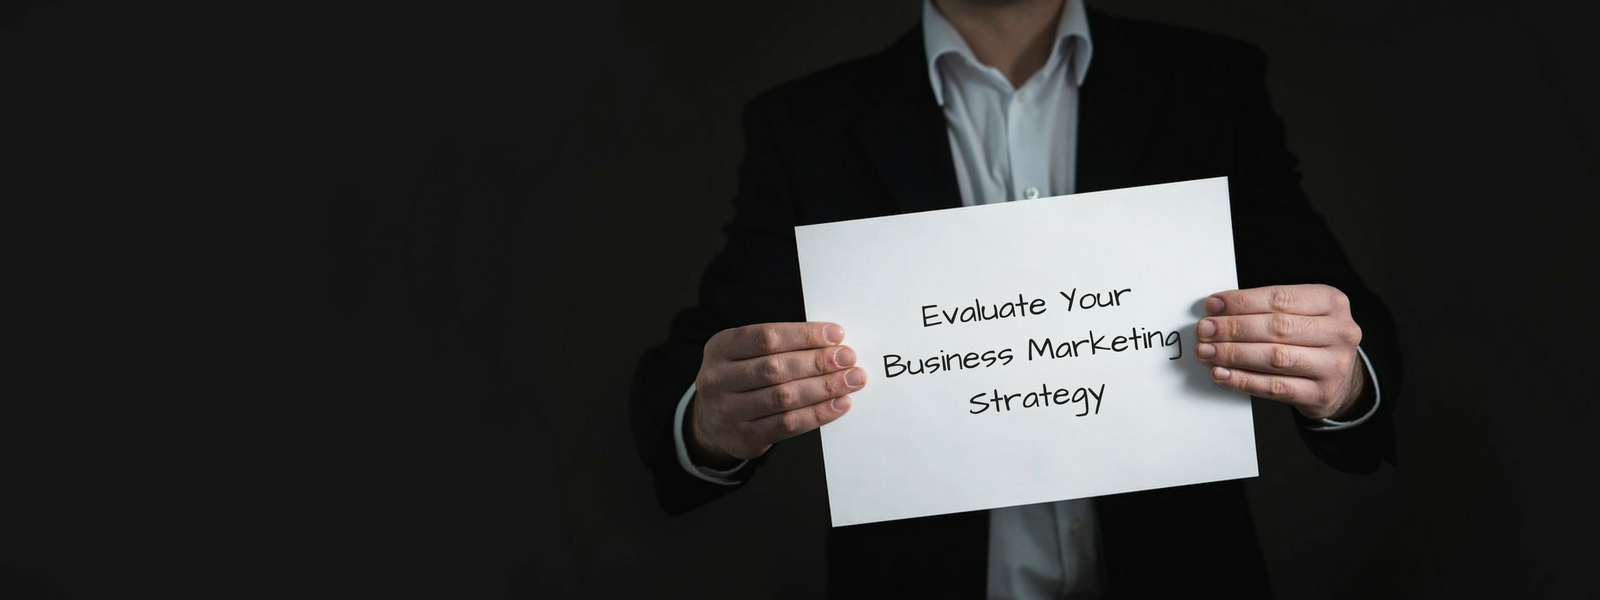 evaluating your business marketing strategy